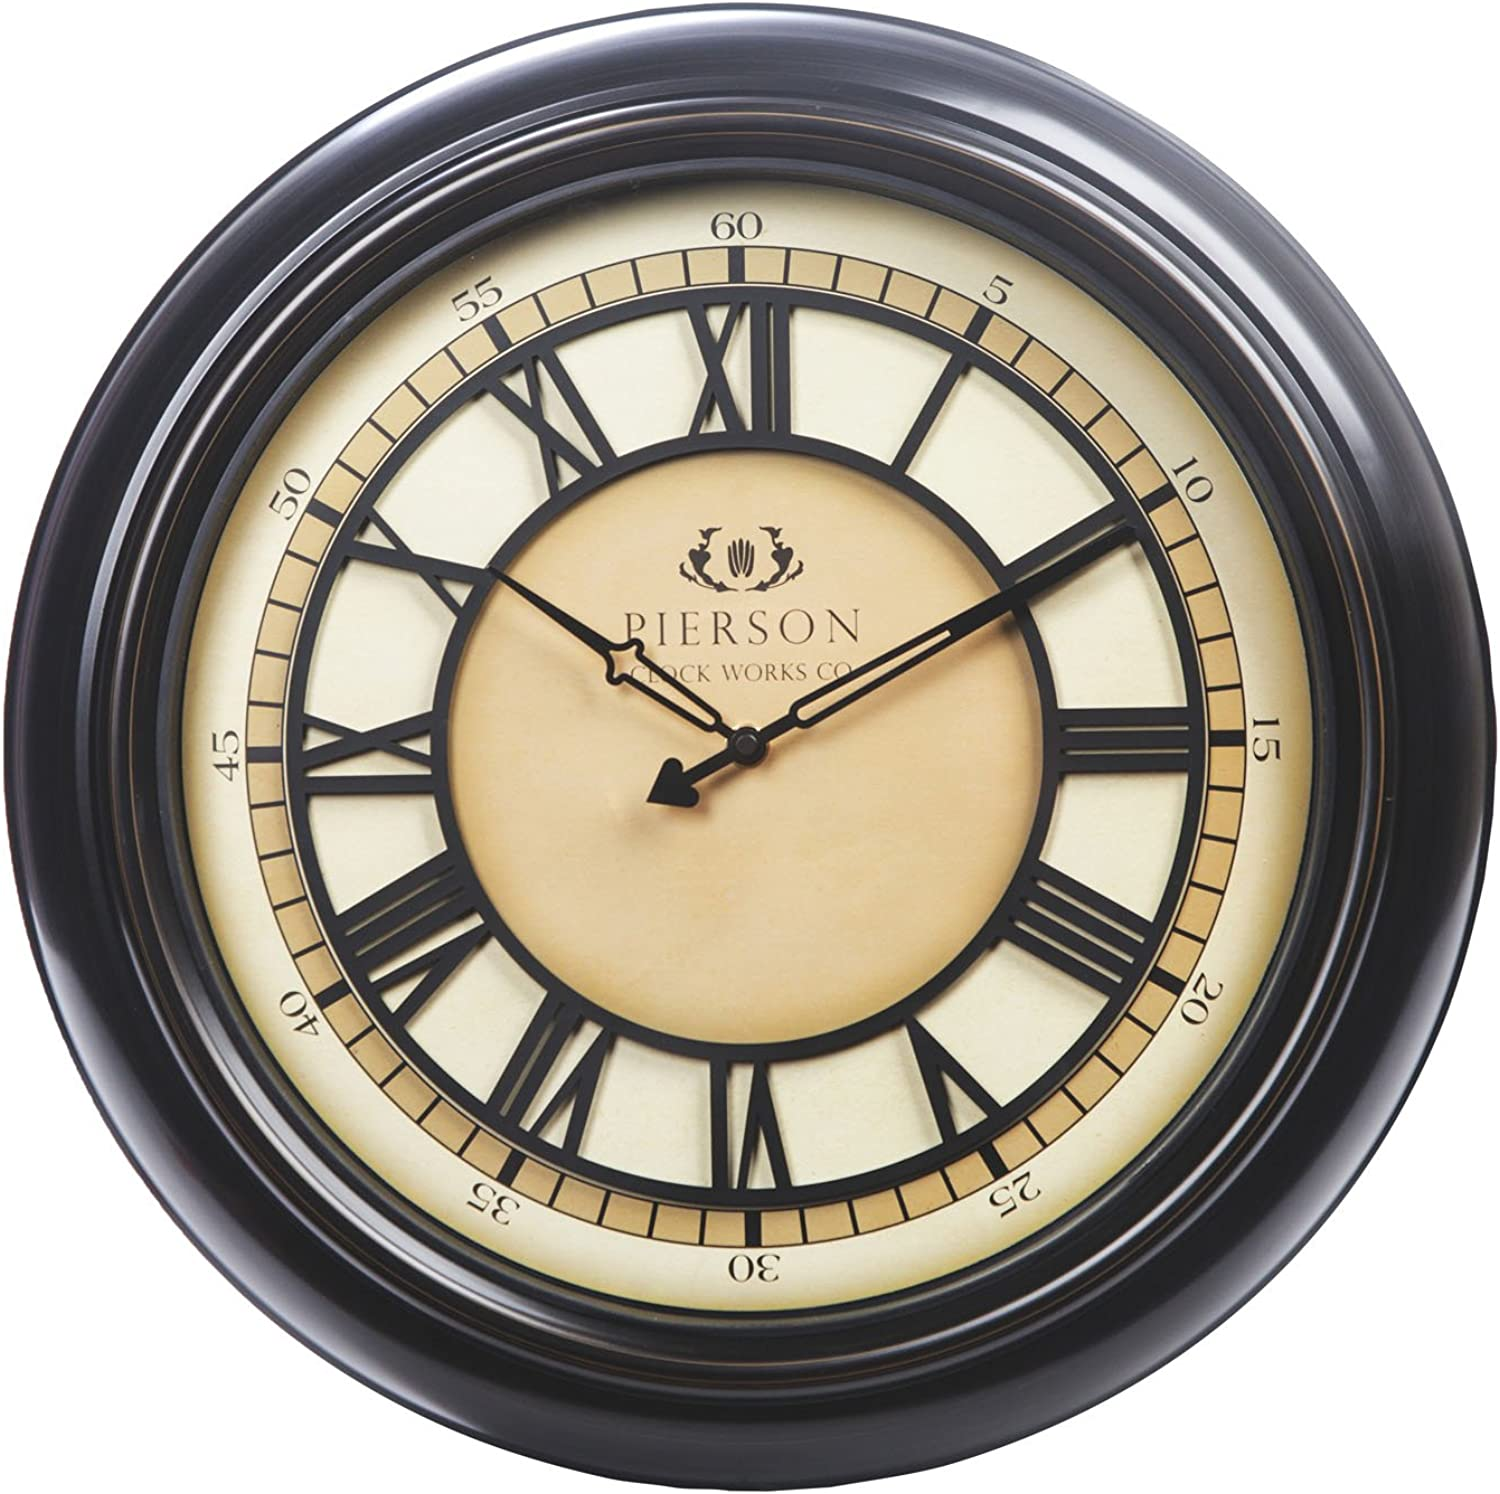 Chaney Instruments Co 75176 Wall Clock with Raised Dial, 18 , Black